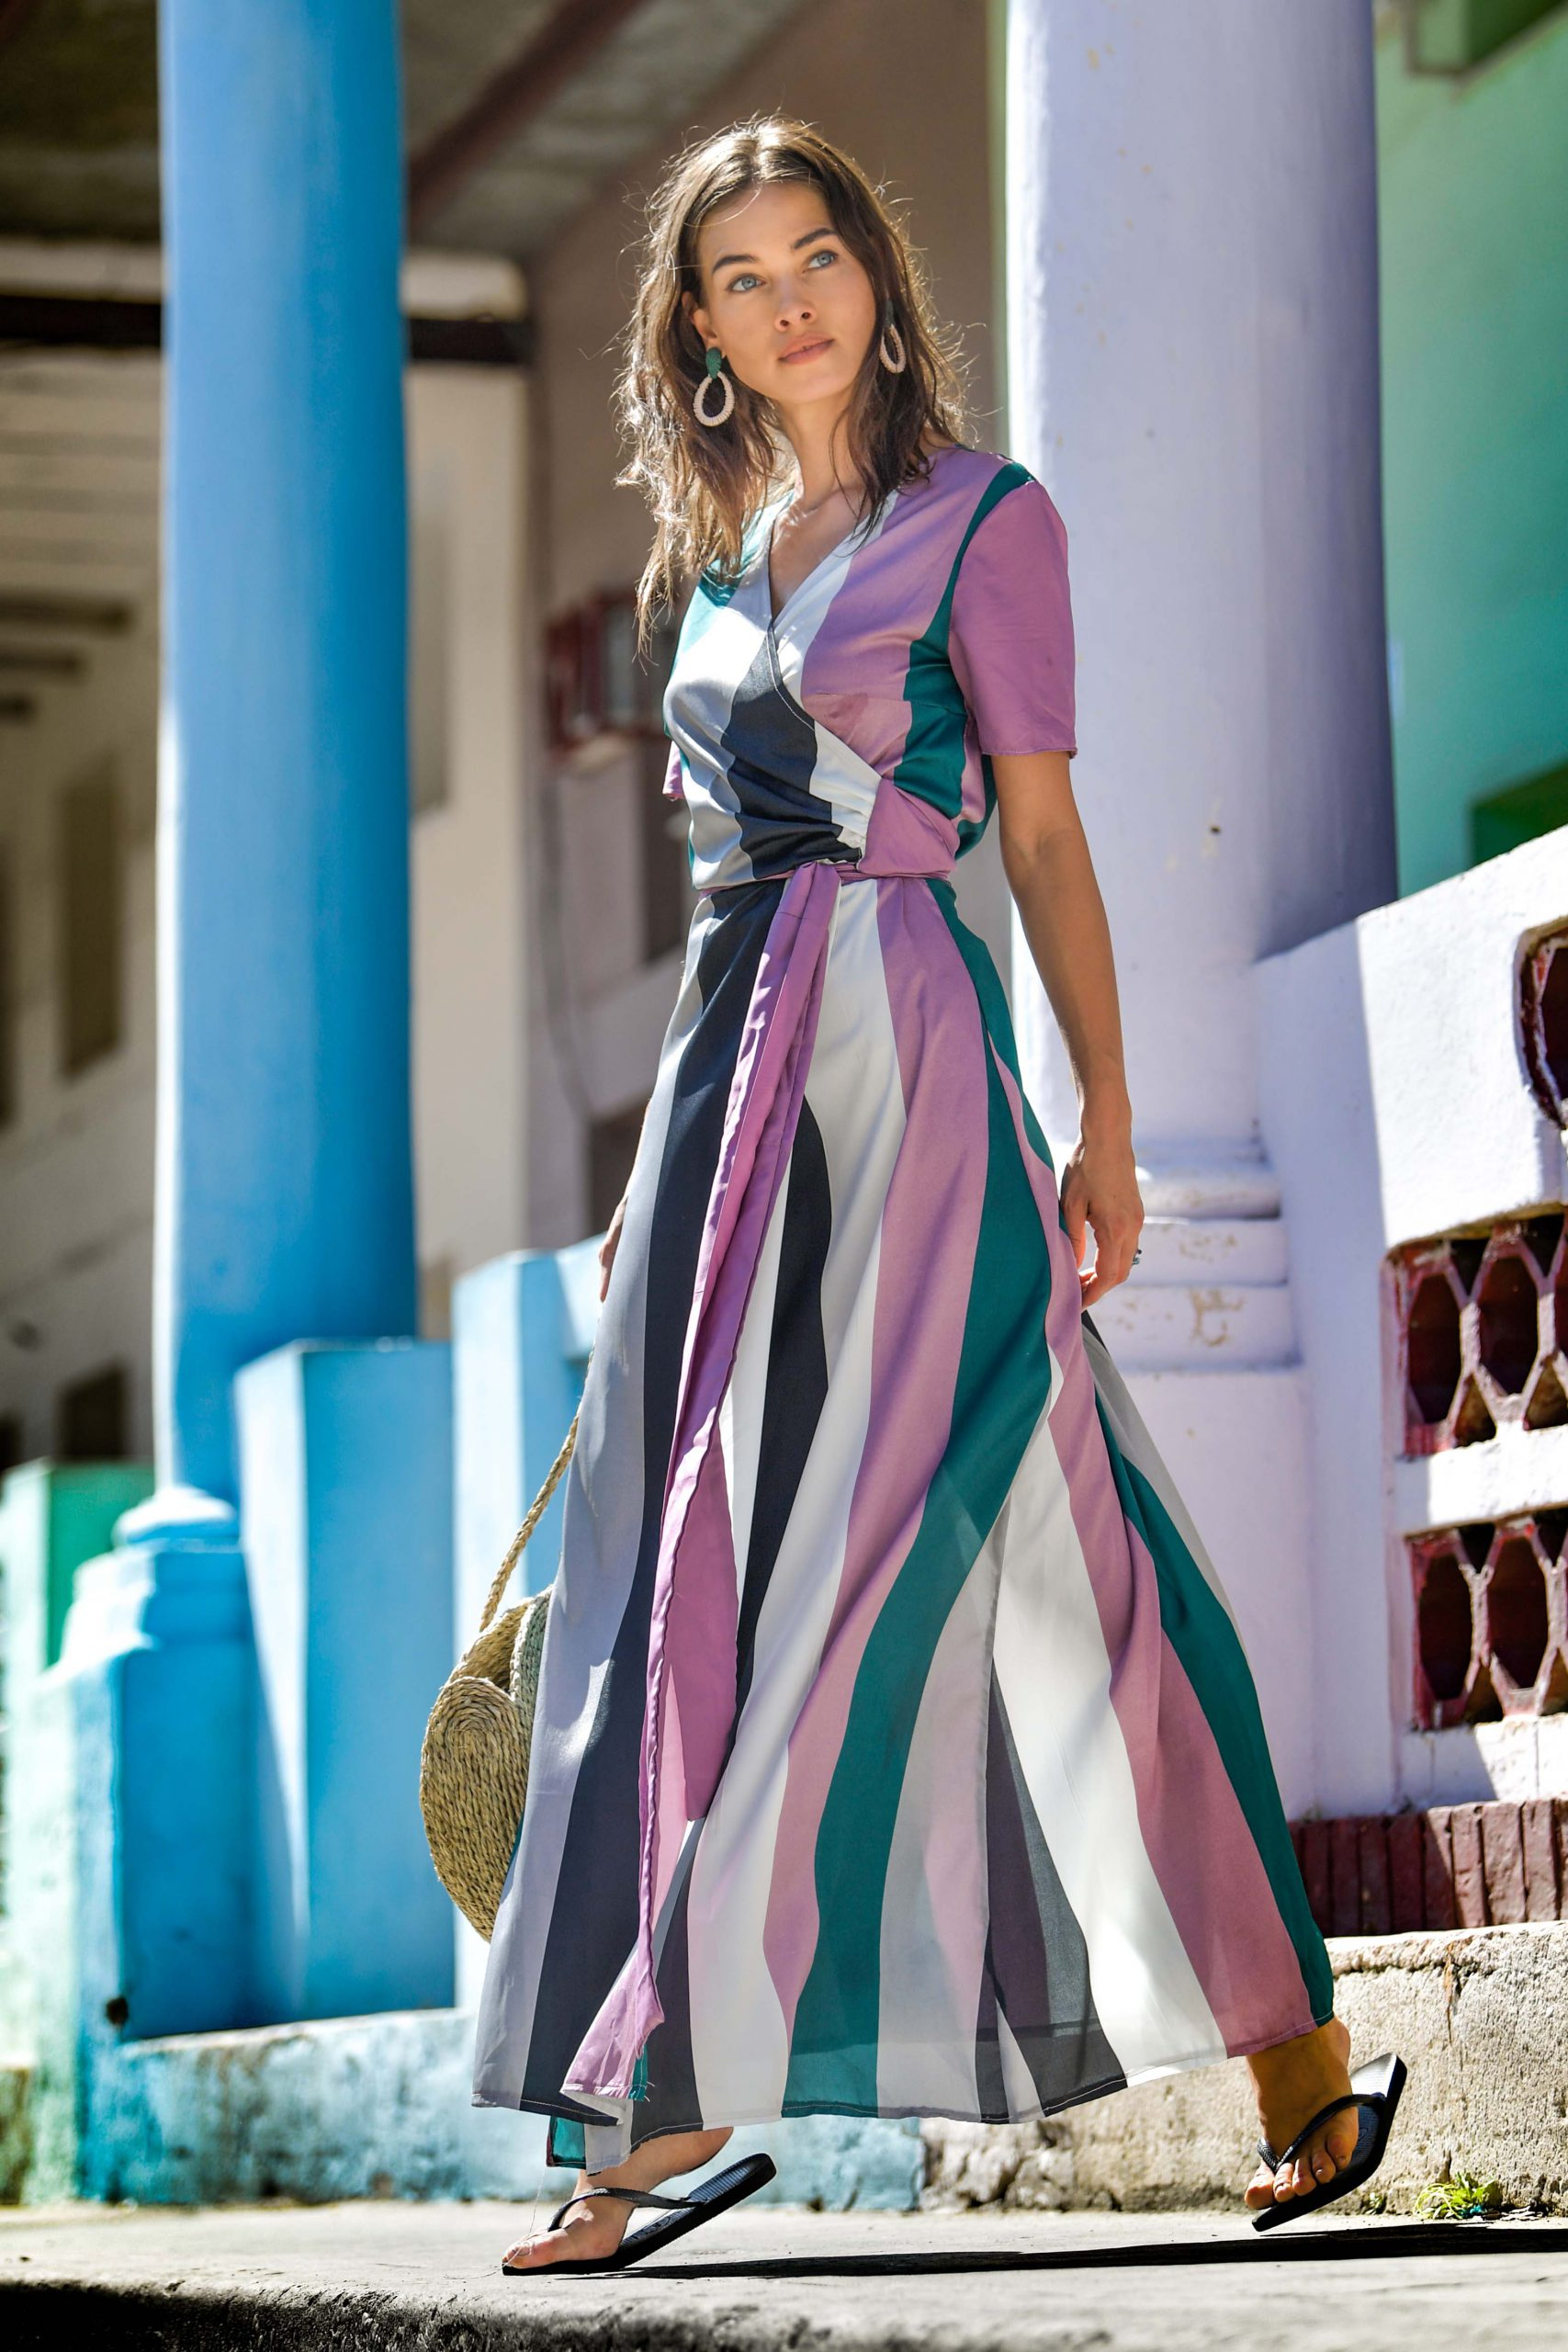 Fashion in Cuba by Peter Mueller Photography 66